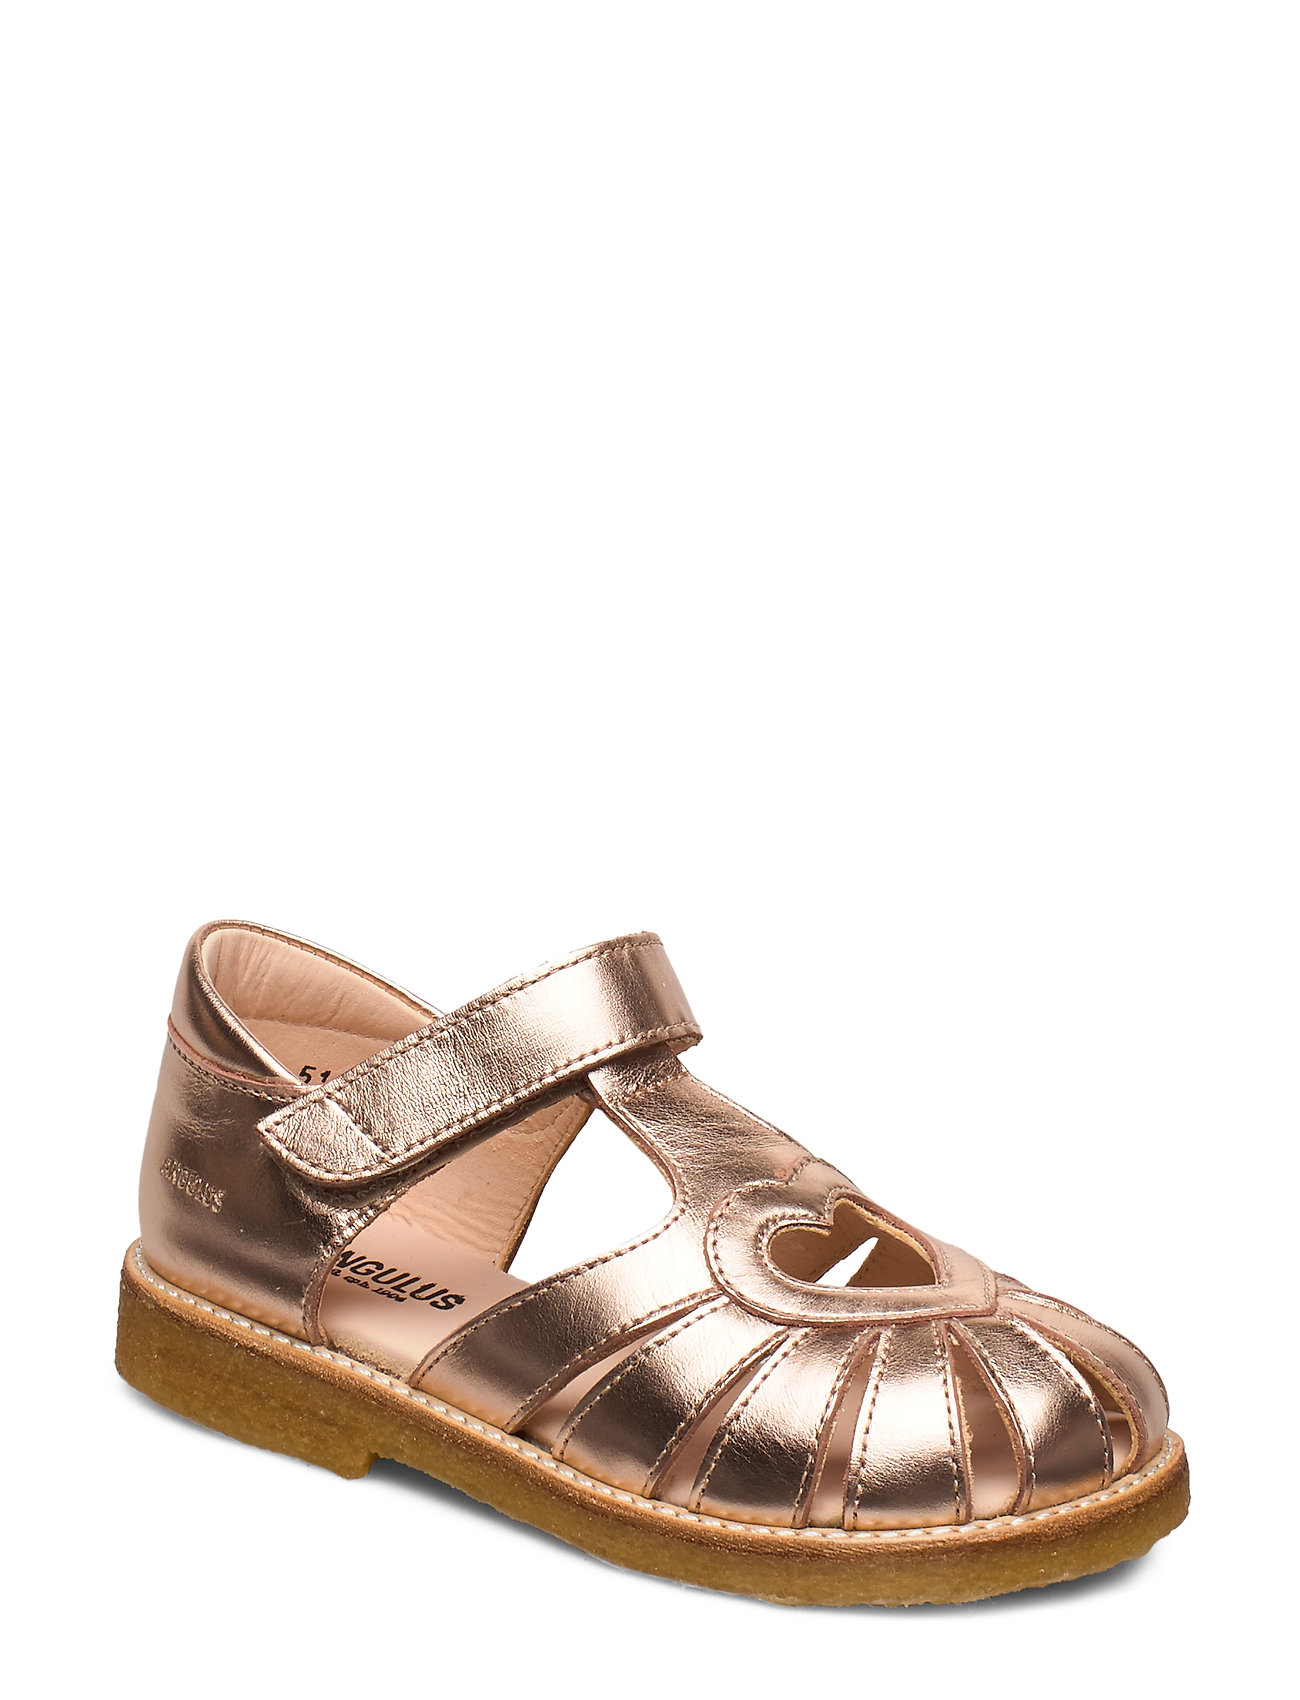 ANGULUS Sandal with heart detail - 1311 ROSE COPPER